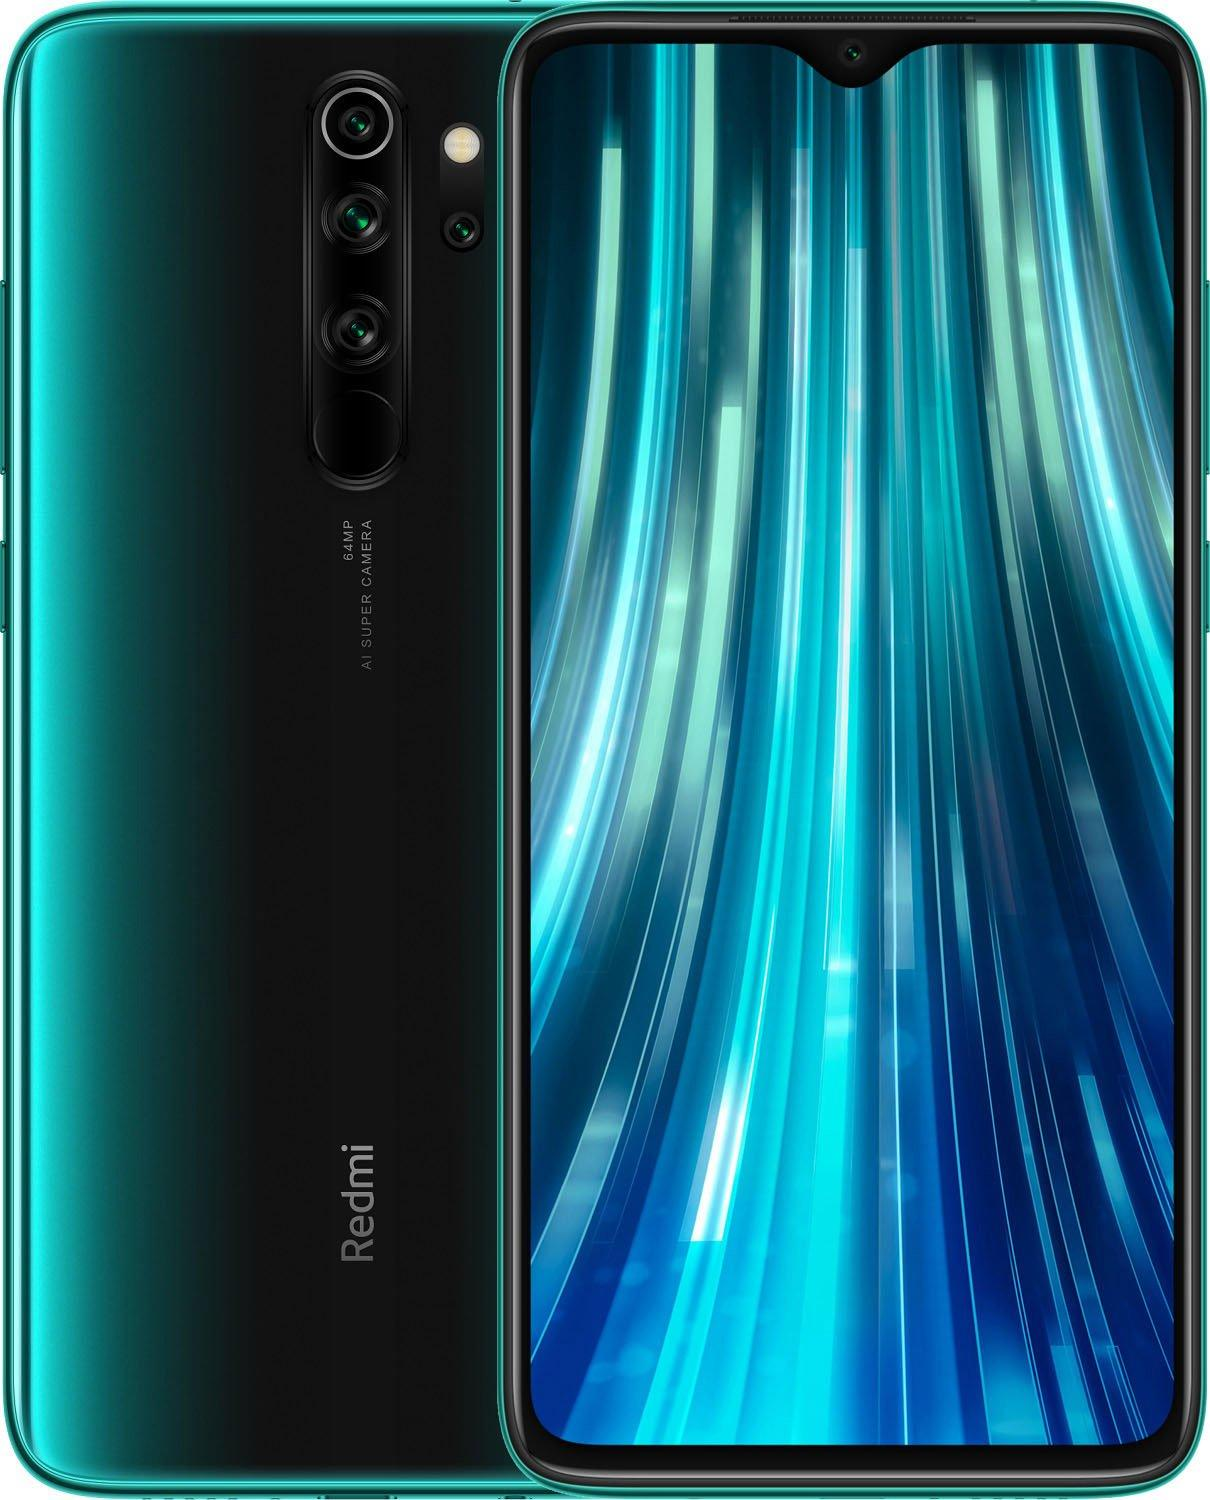 Смартфон Xiaomi Redmi Note 8 Pro 6/128Gb Forest Green